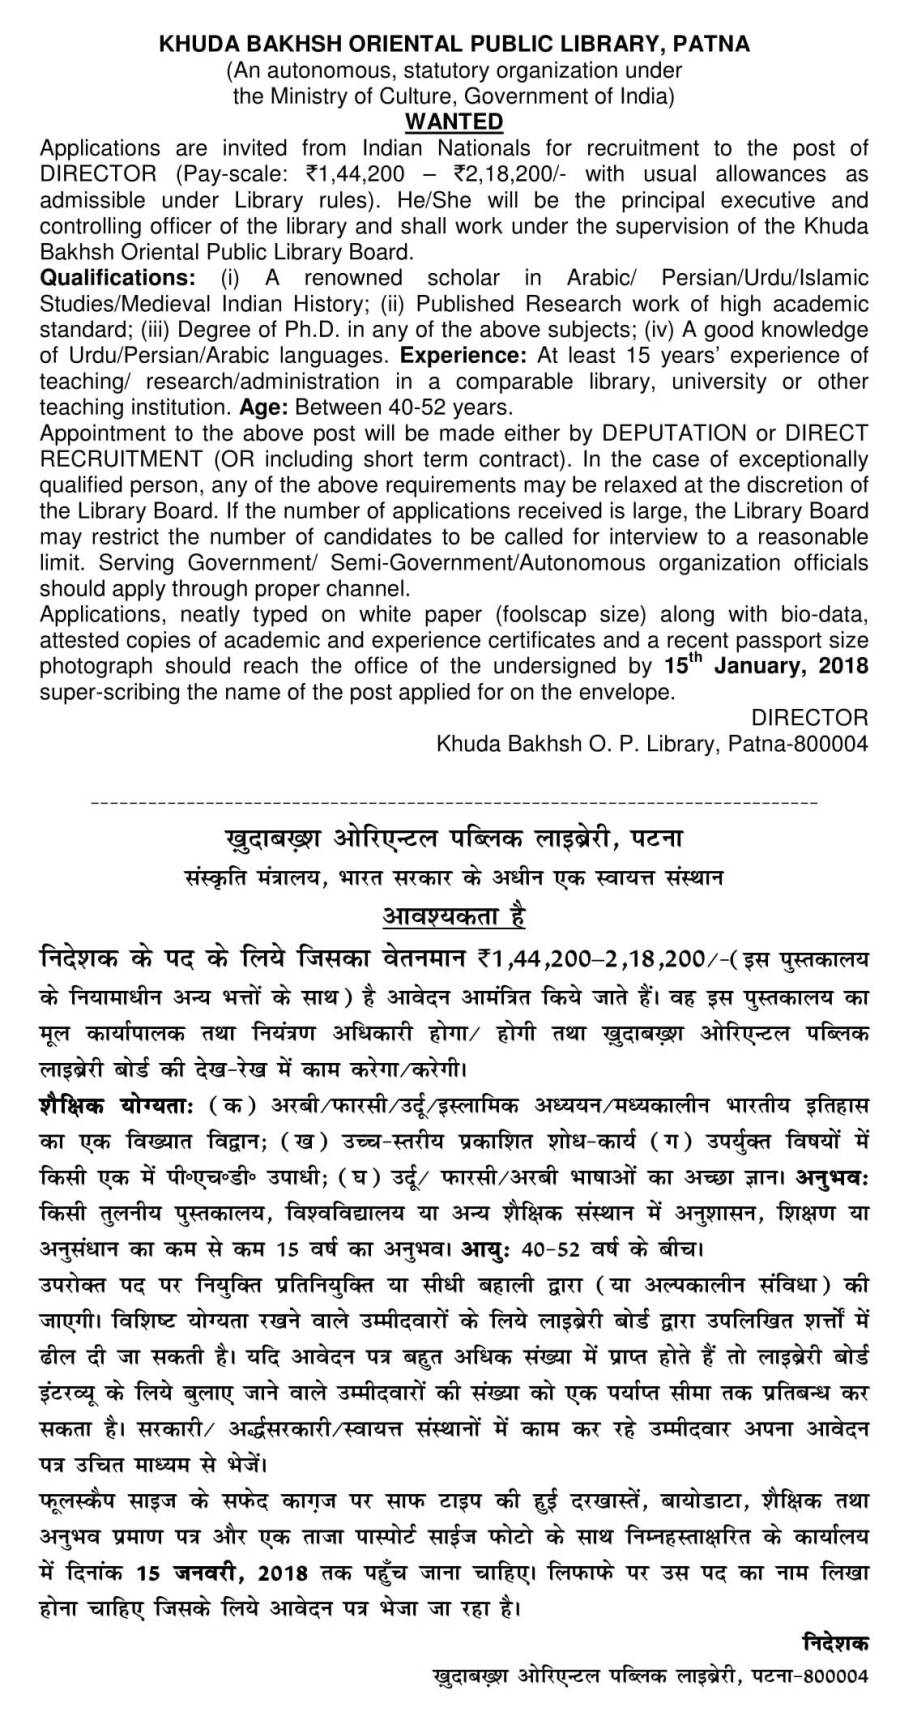 Advt. fot the post of Director-1.jpg